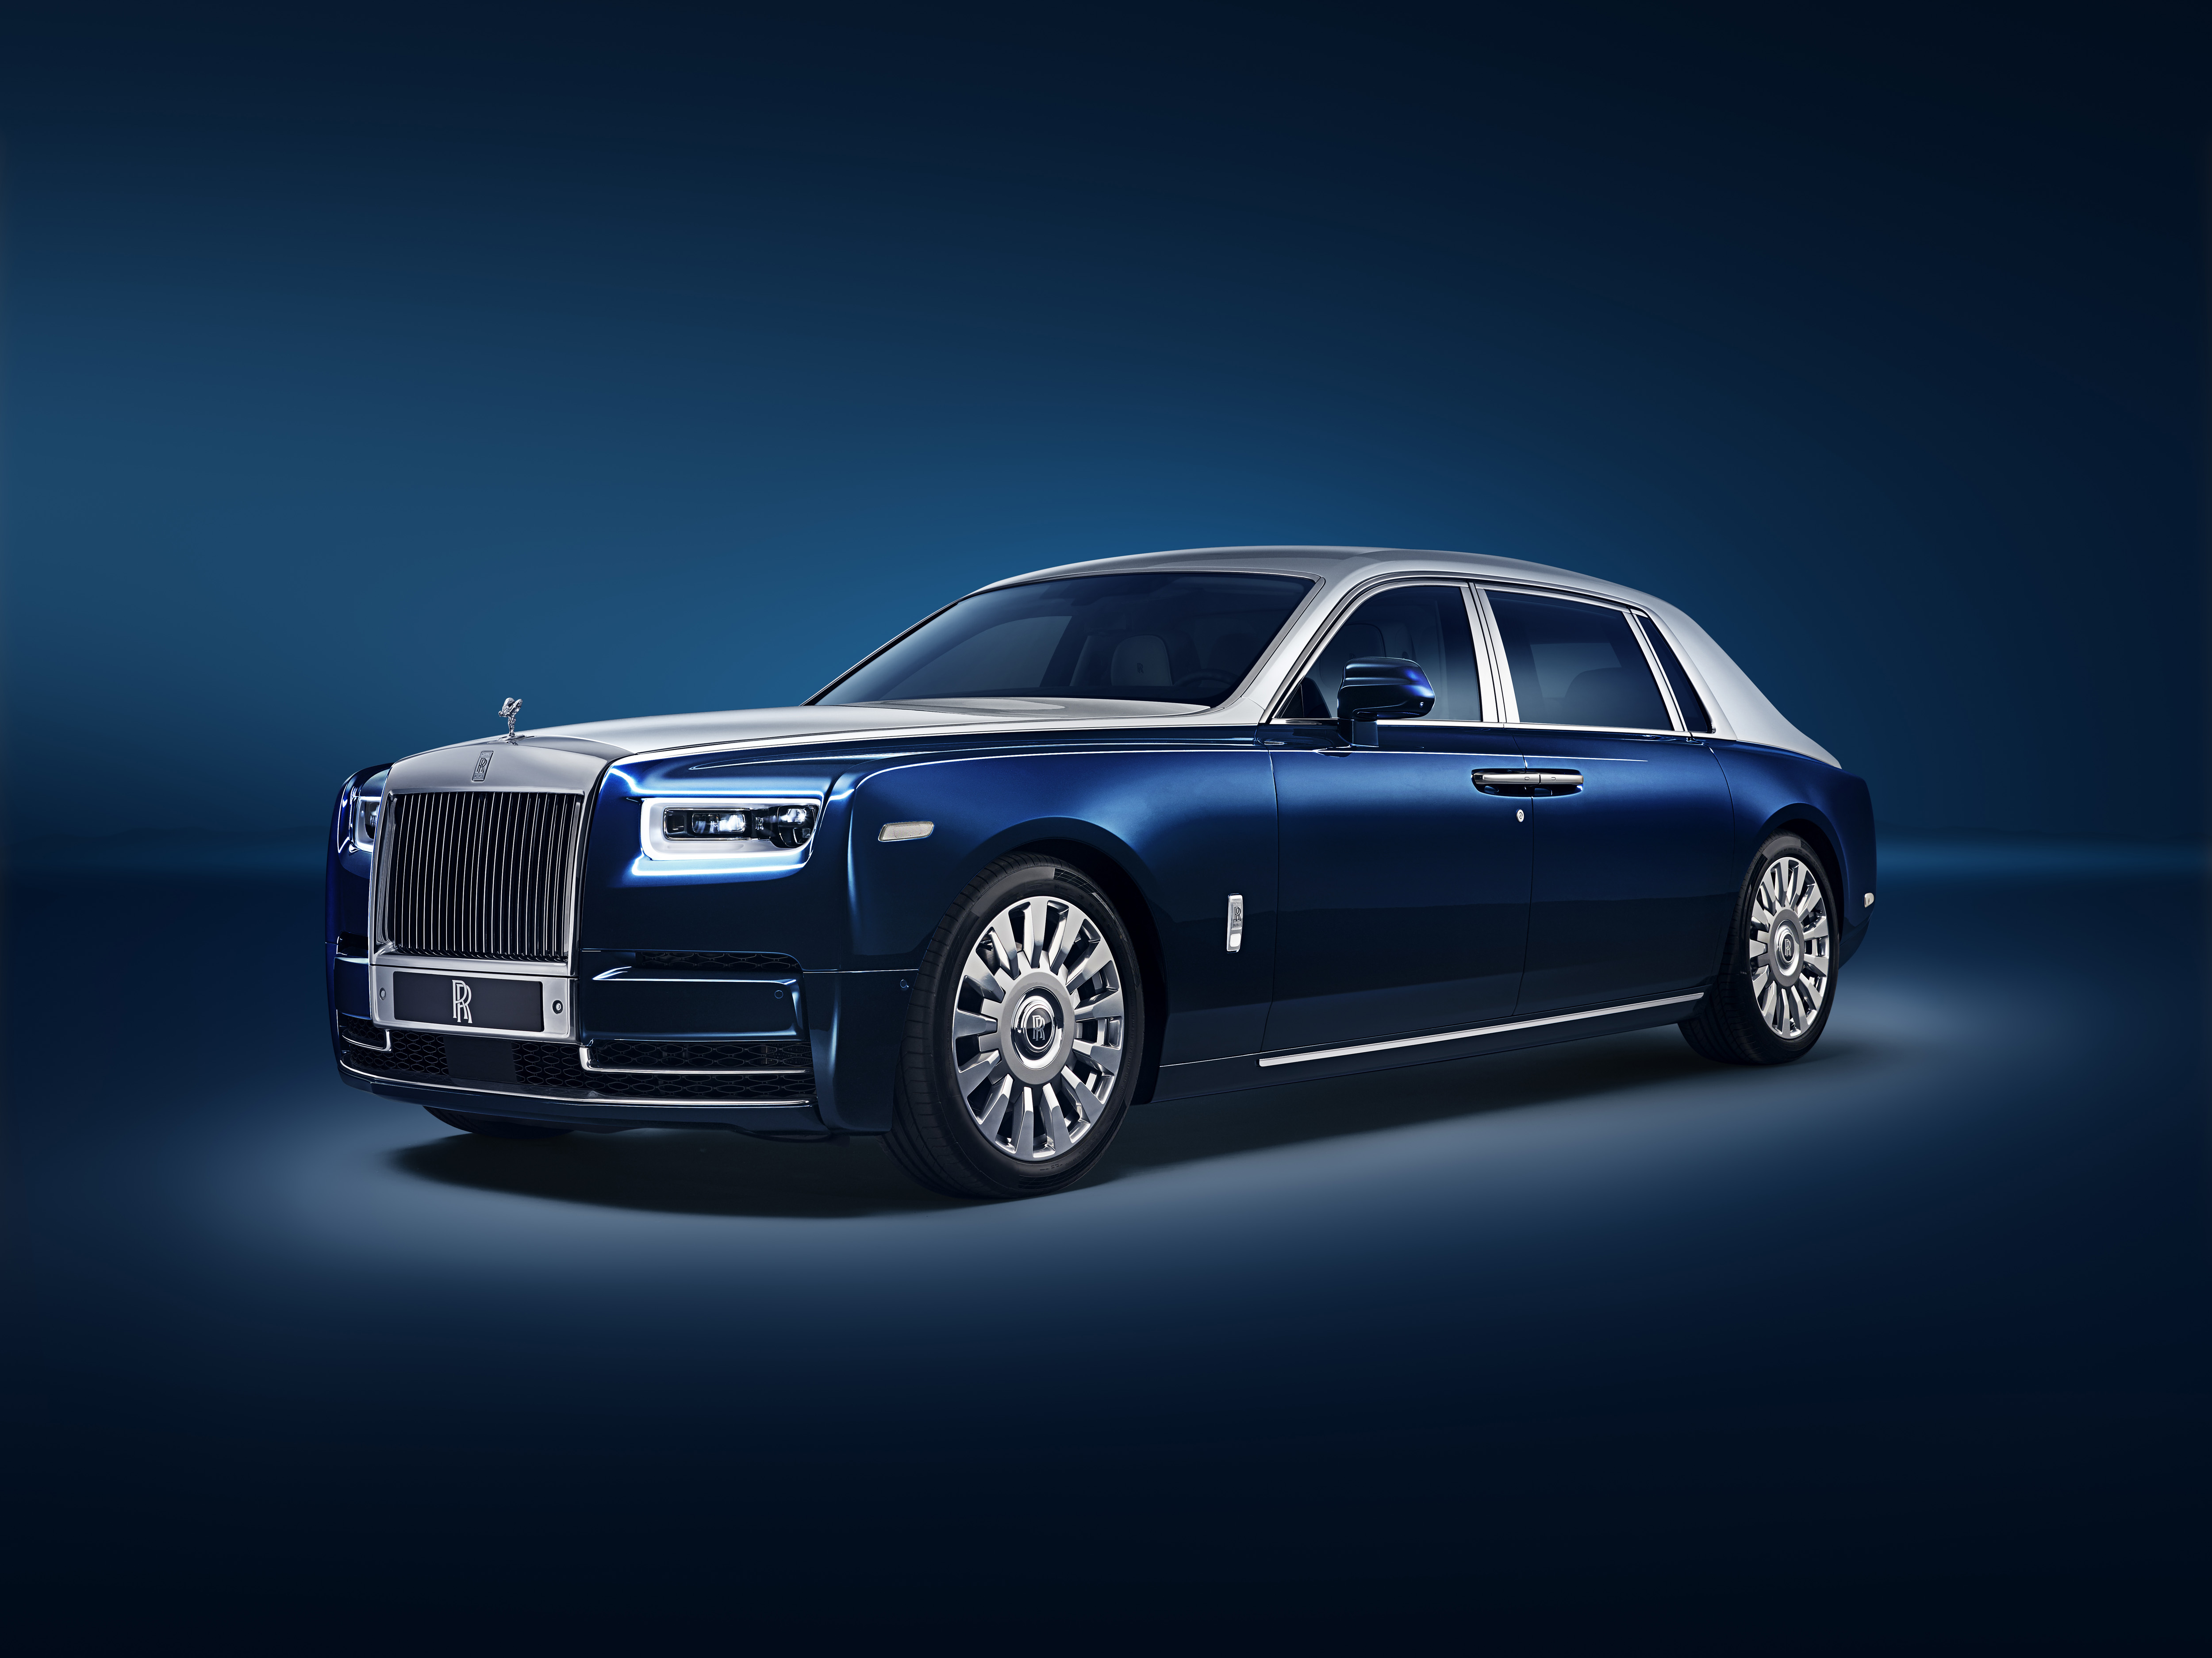 Rolls-Royce Motor Cars takes Luxury of Privacy to a New Level